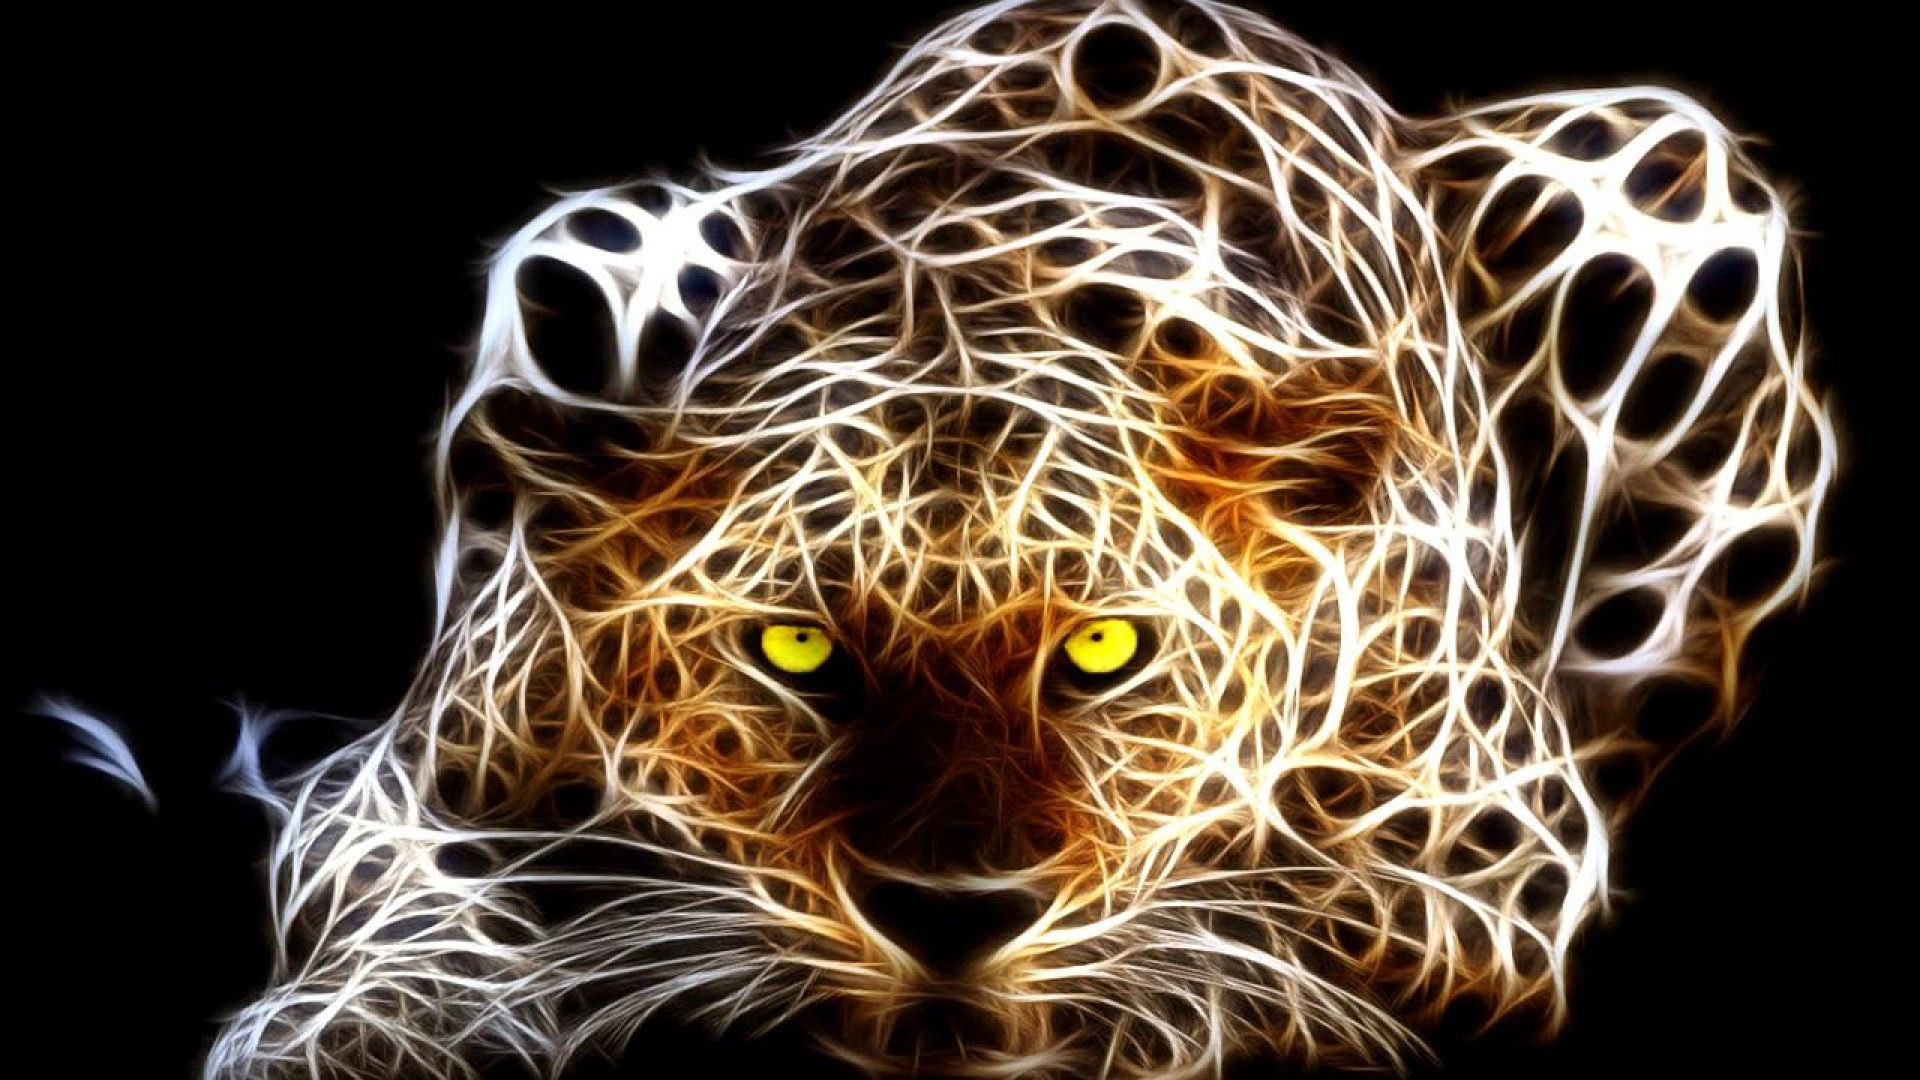 Miscellaneous digital art tiger wallpaper is a high resolution miscellaneous digital art tiger wallpaper is a high resolution desktop wallpaper posted in miscellaneous category altavistaventures Choice Image